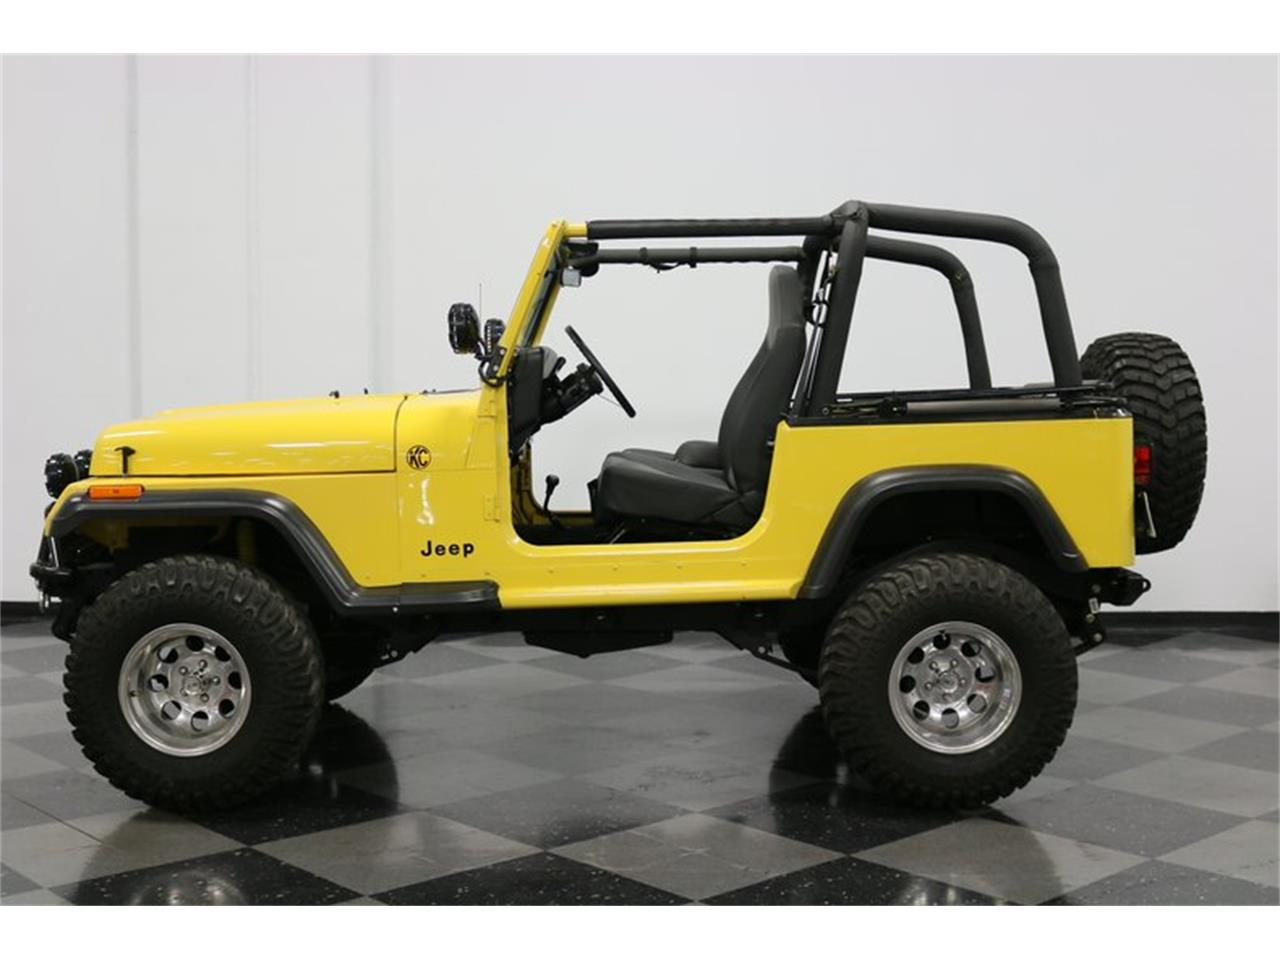 Large Picture of '93 Wrangler located in Texas - $21,995.00 Offered by Streetside Classics - Dallas / Fort Worth - P701